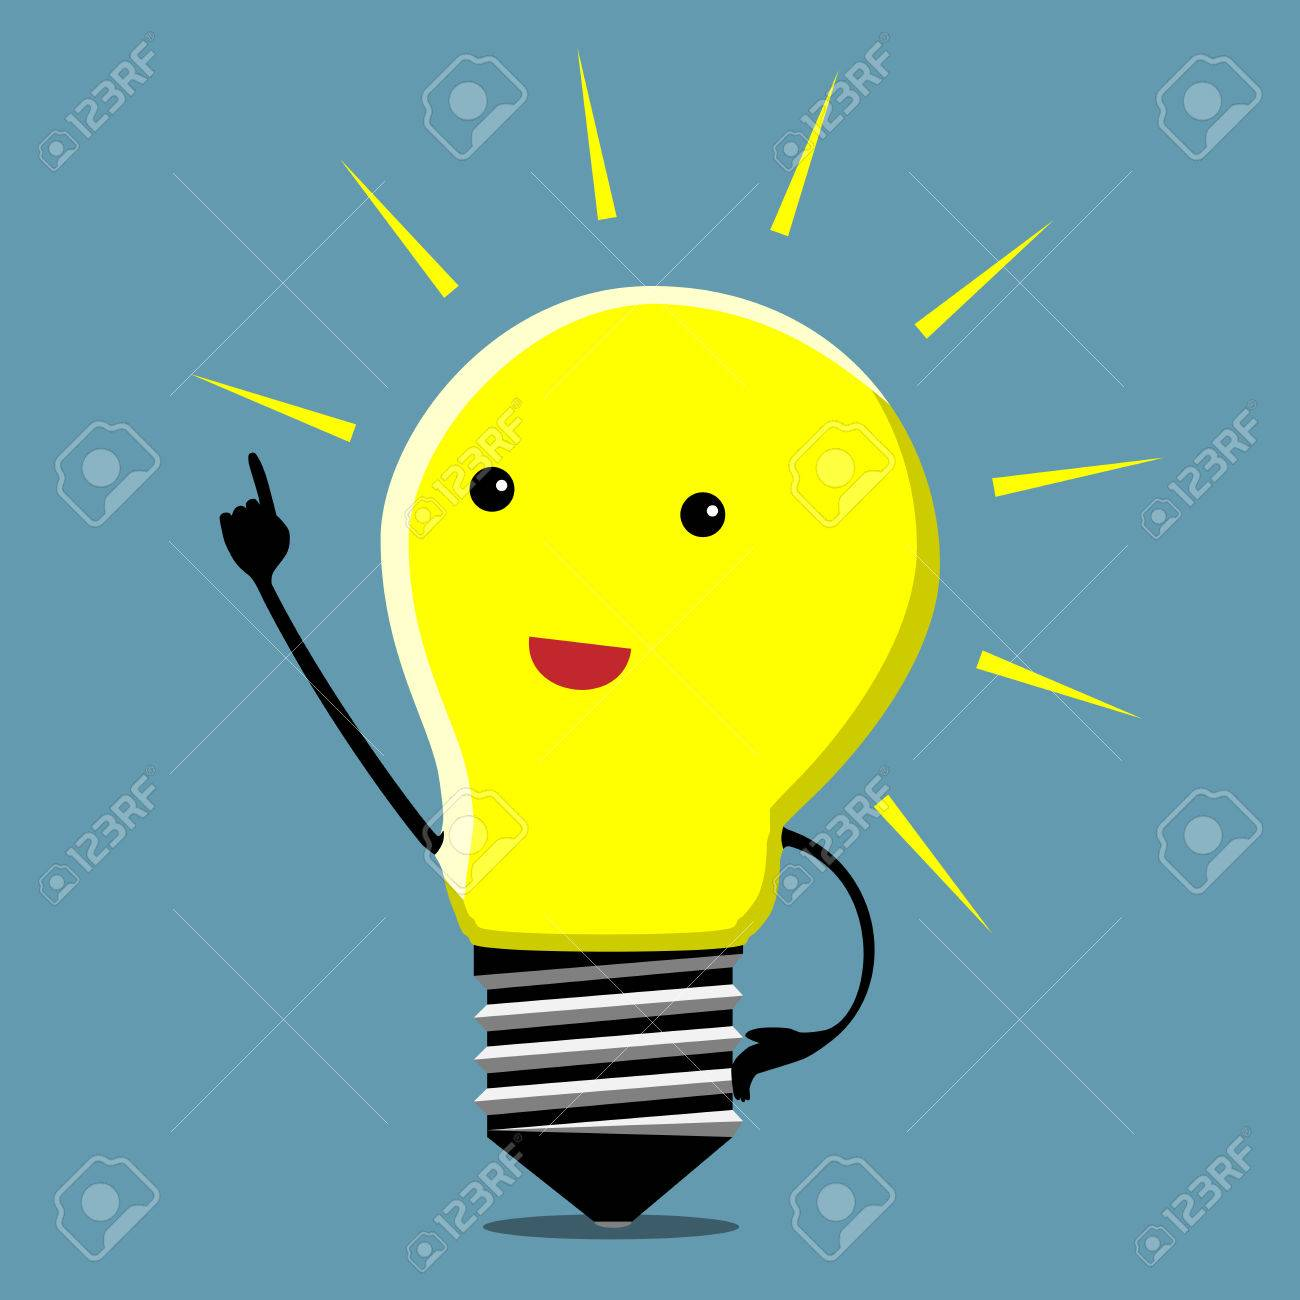 Light bulb character in moment of insight - 38478898